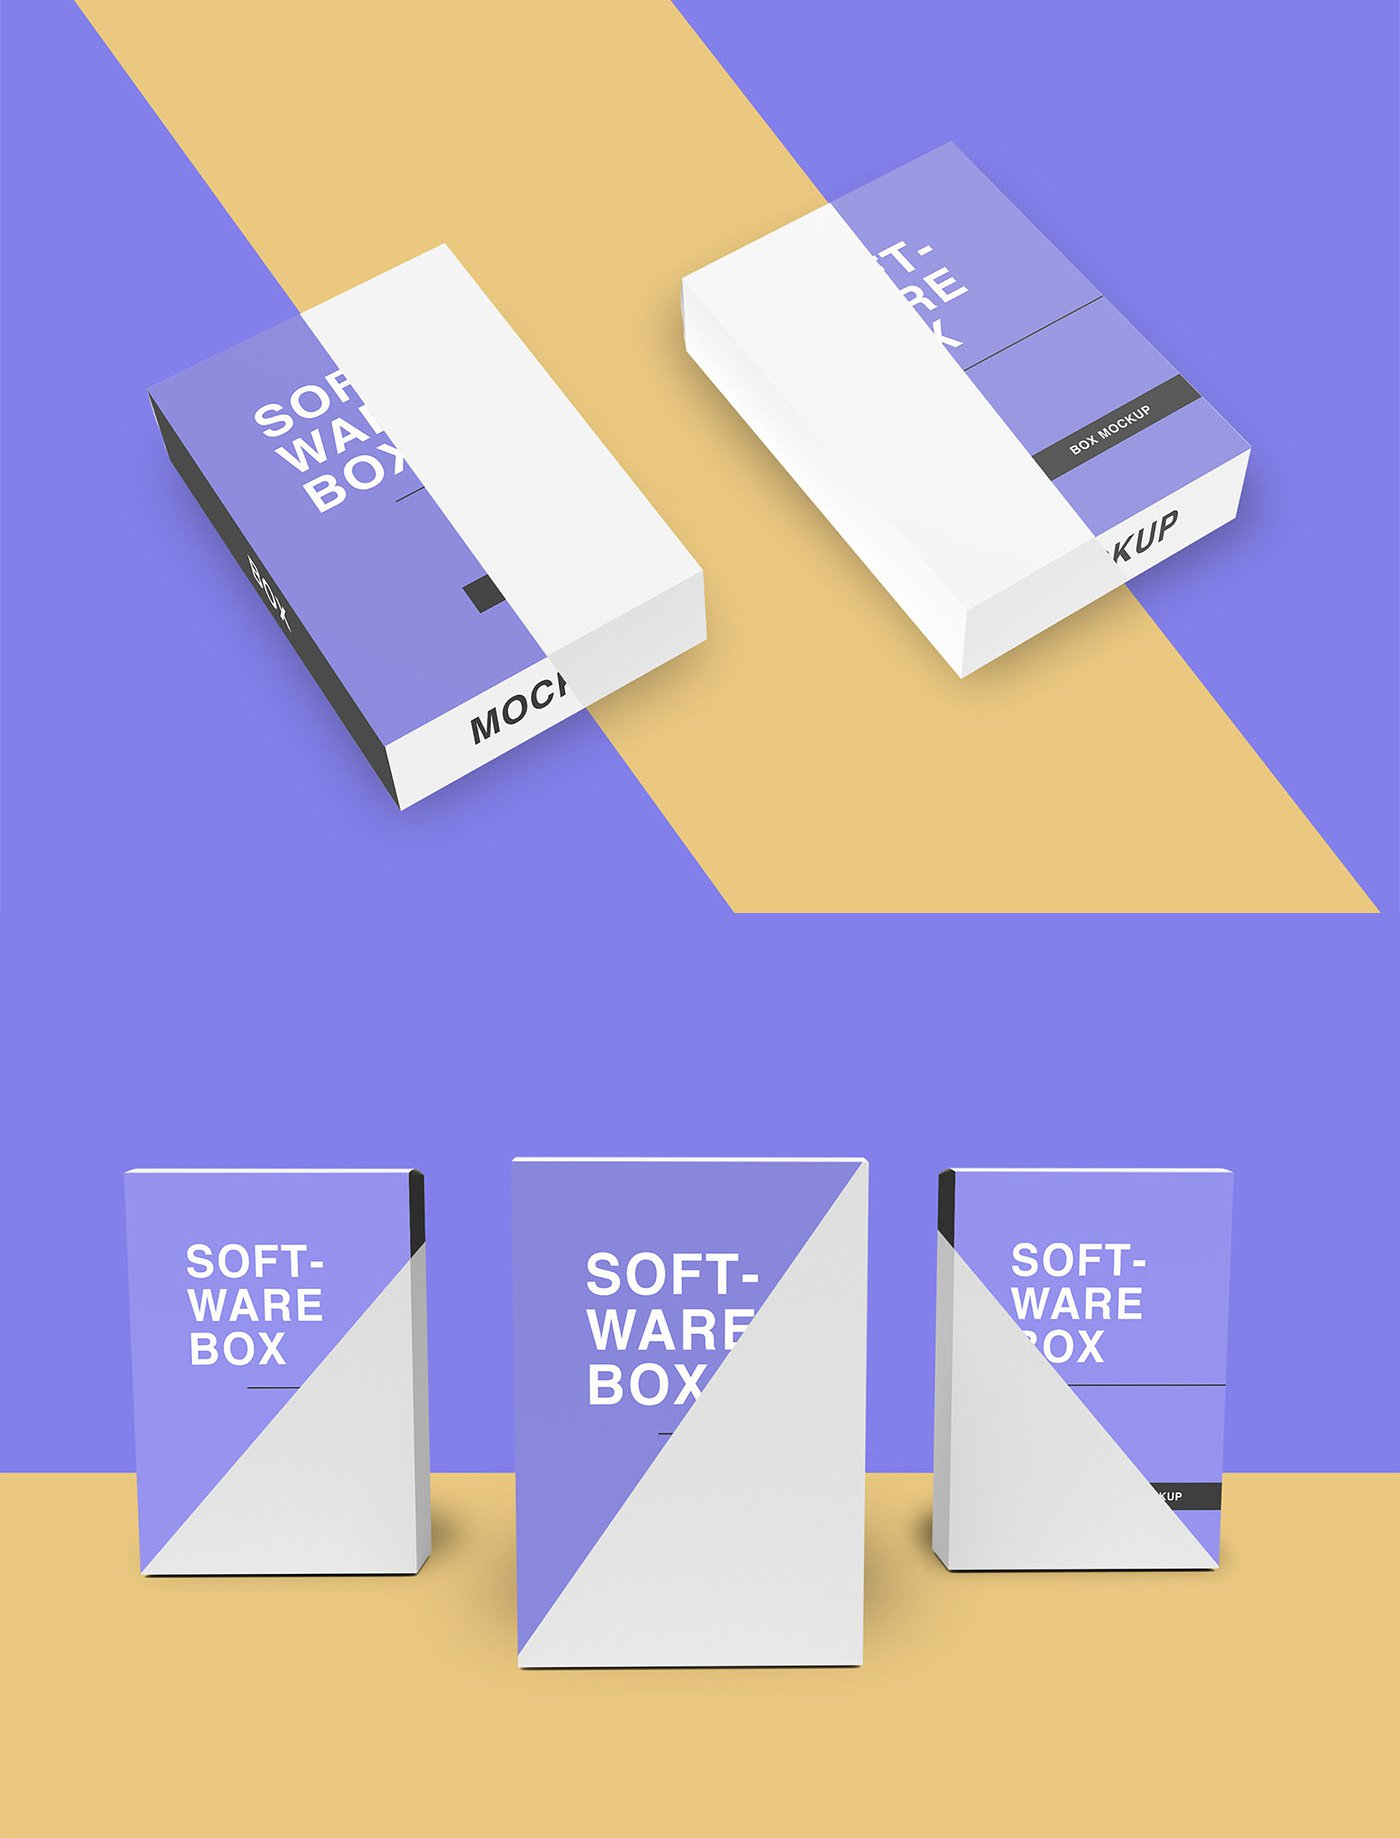 Free Software Box Mockup Set